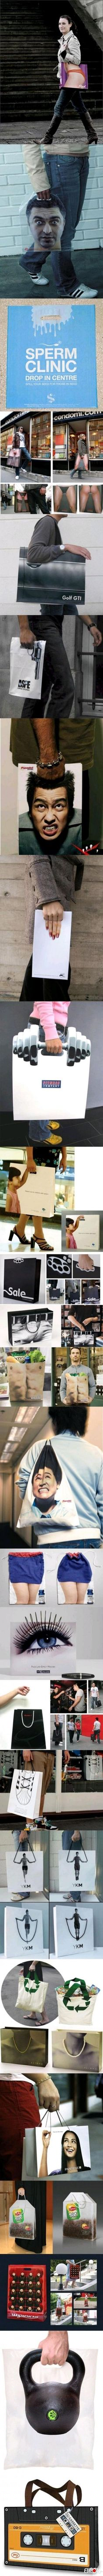 The Best Funny Pictures GIF and MEMES about Funny Pictures - Epic shopping bags. Best MEME and GIFS about Funny Pictures - Epic shopping bags and Funny Pictures Illusion, Funny Jokes, Hilarious, It's Funny, Retail Bags, Best Funny Images, Creative Bag, Picture Blog, Photo Images